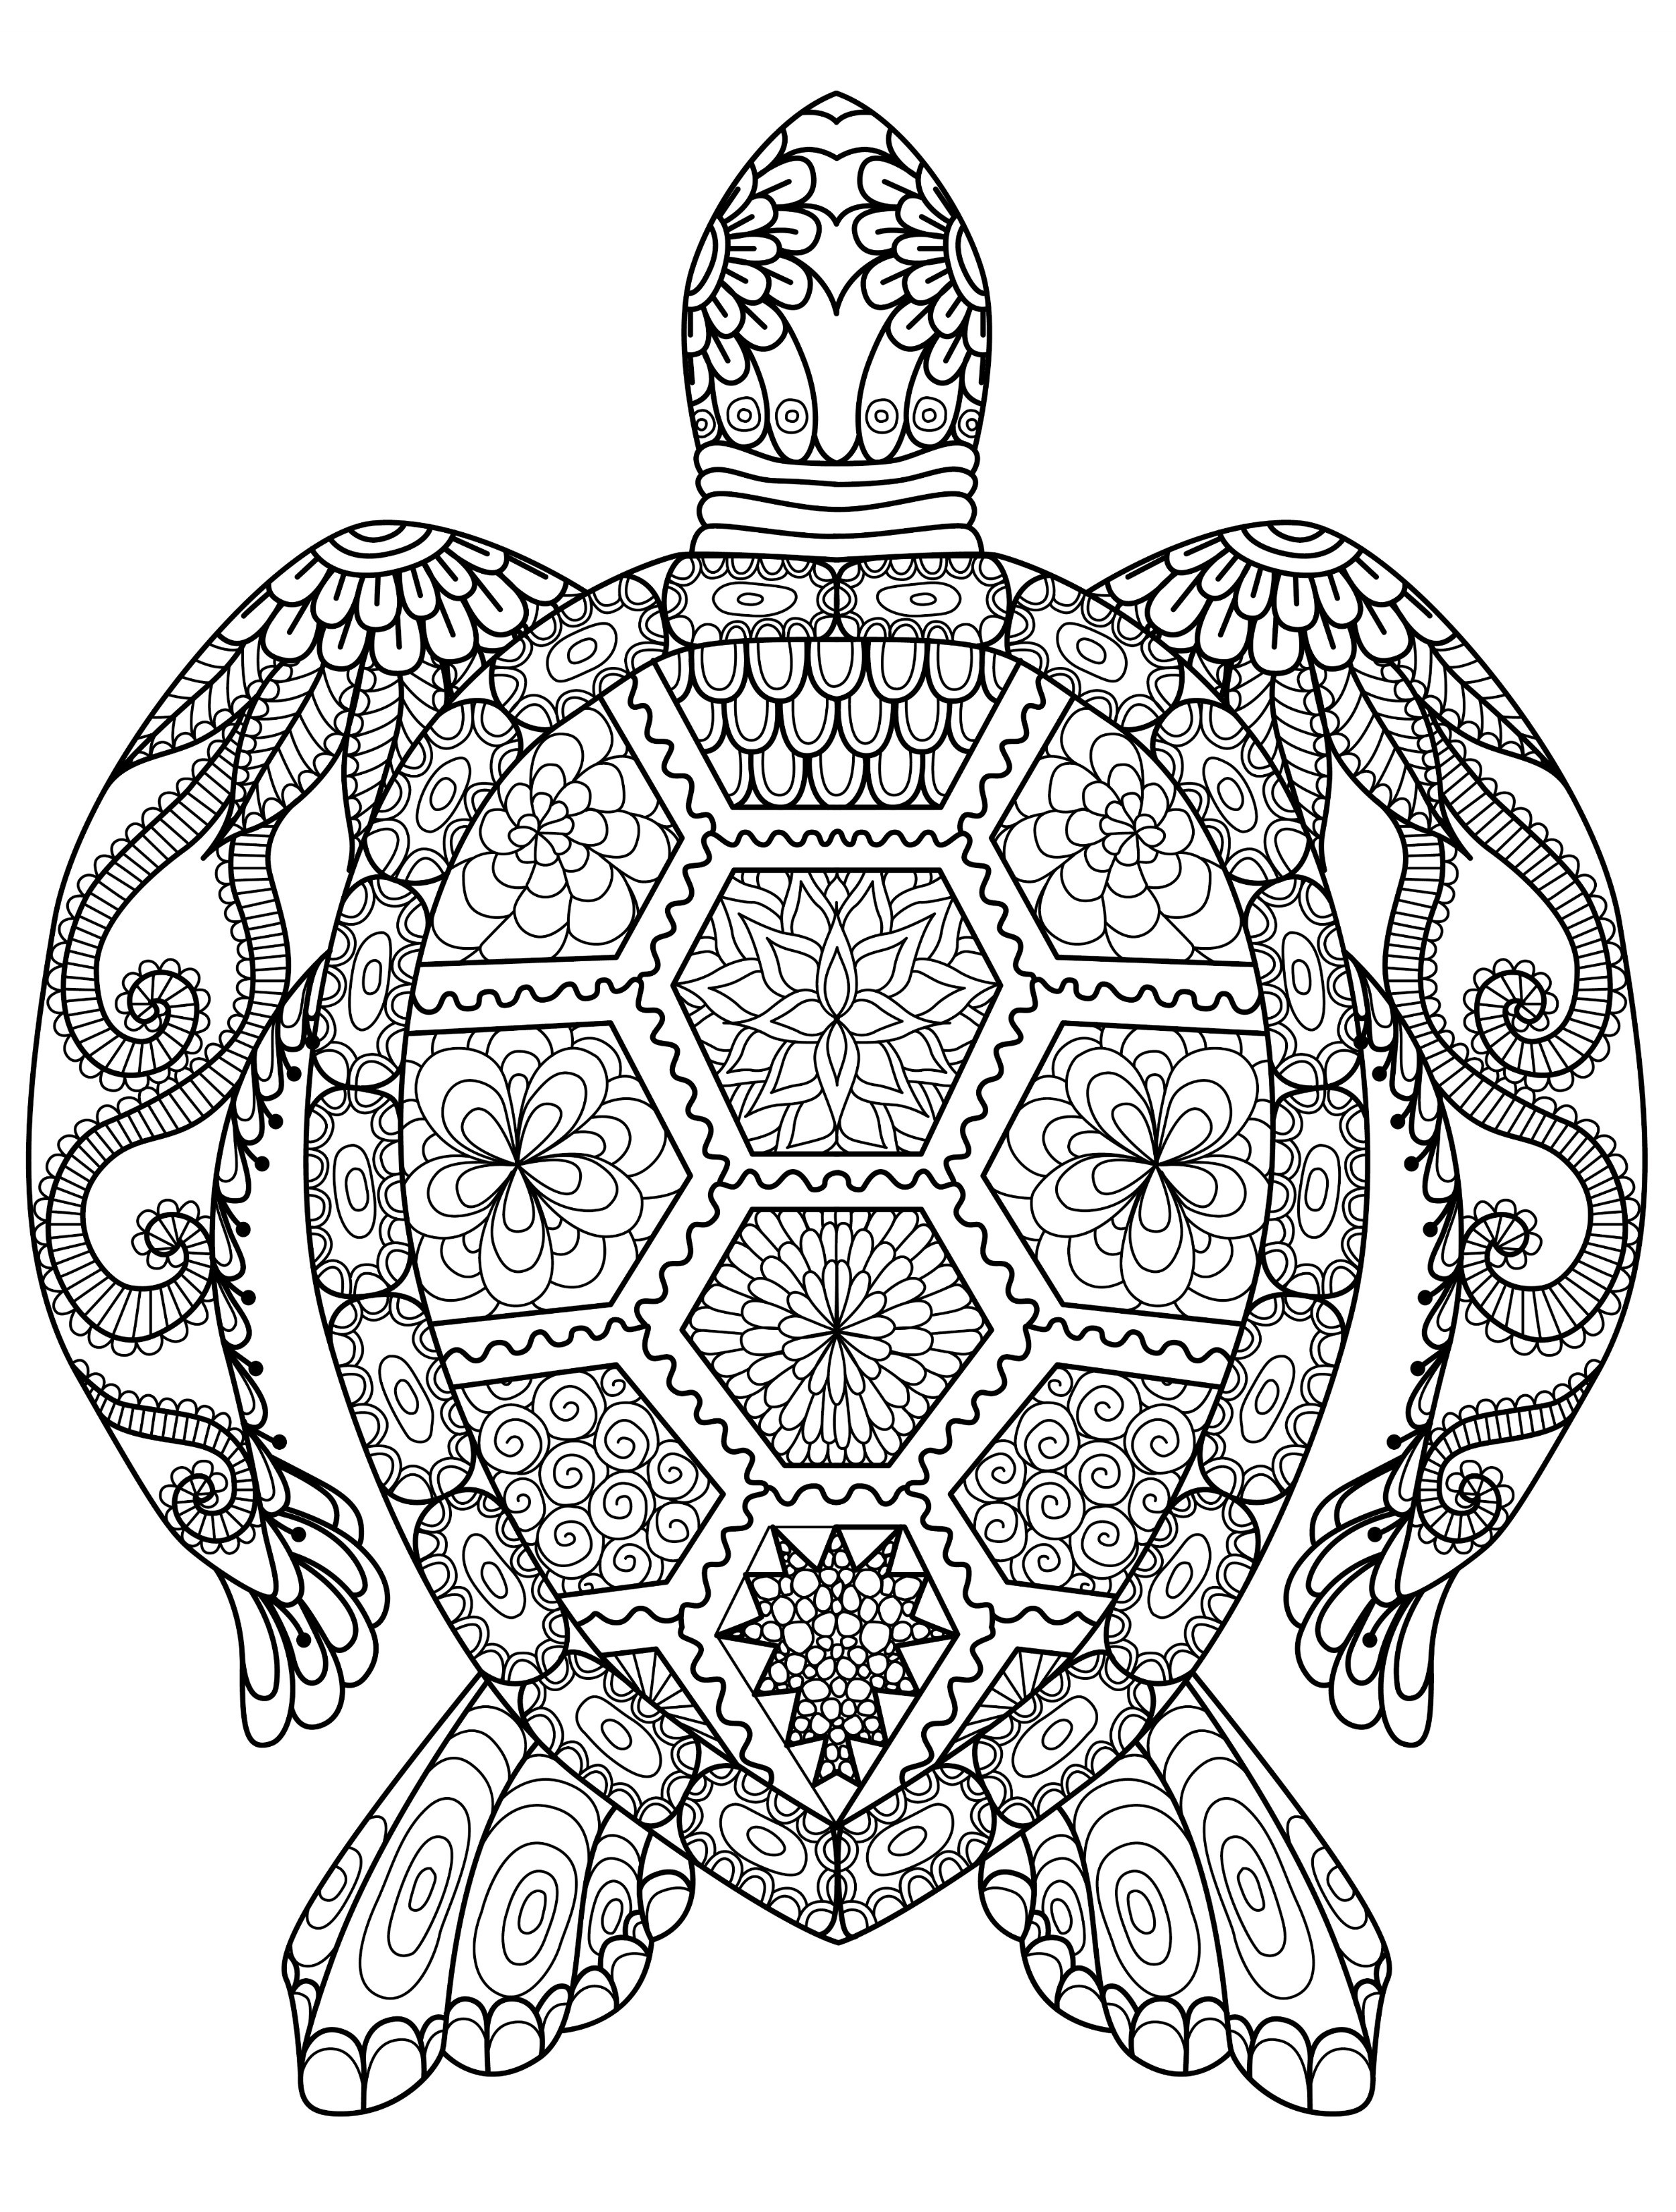 hard drawings to color hard coloring pages for boys at getdrawings free download to color hard drawings